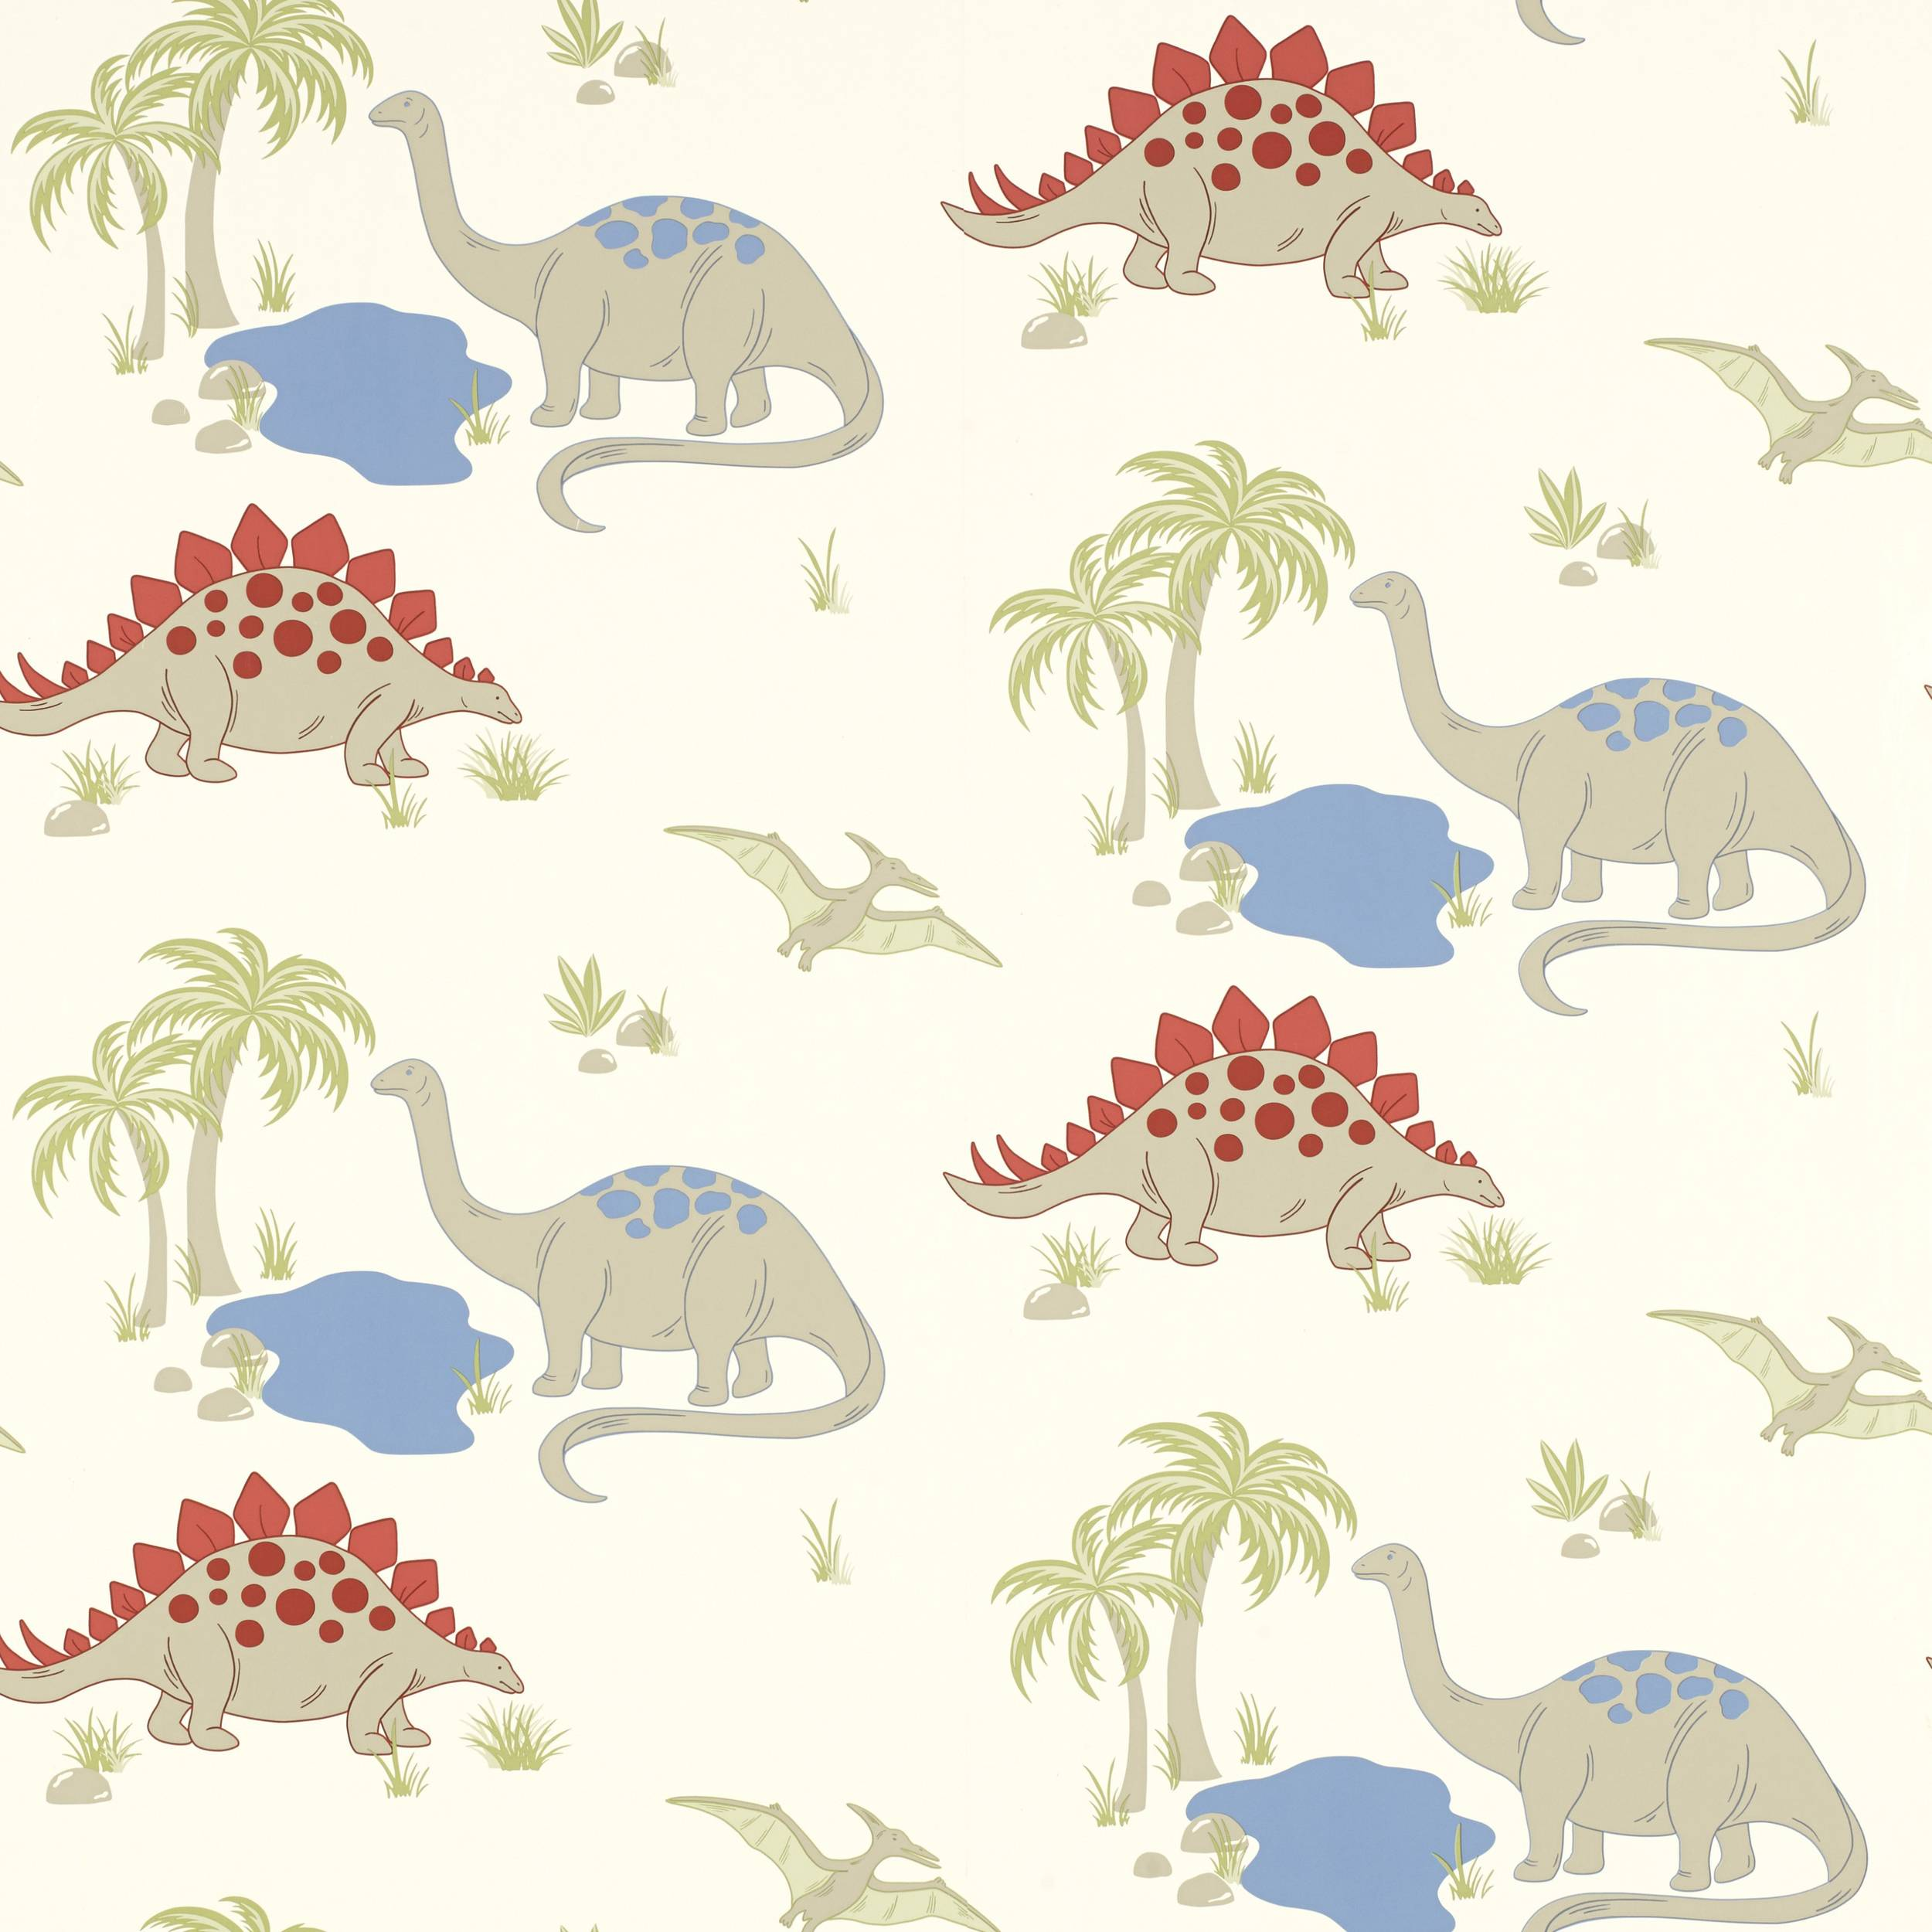 Dino wallpapers wallpaper cave for Kids dinosaur fabric